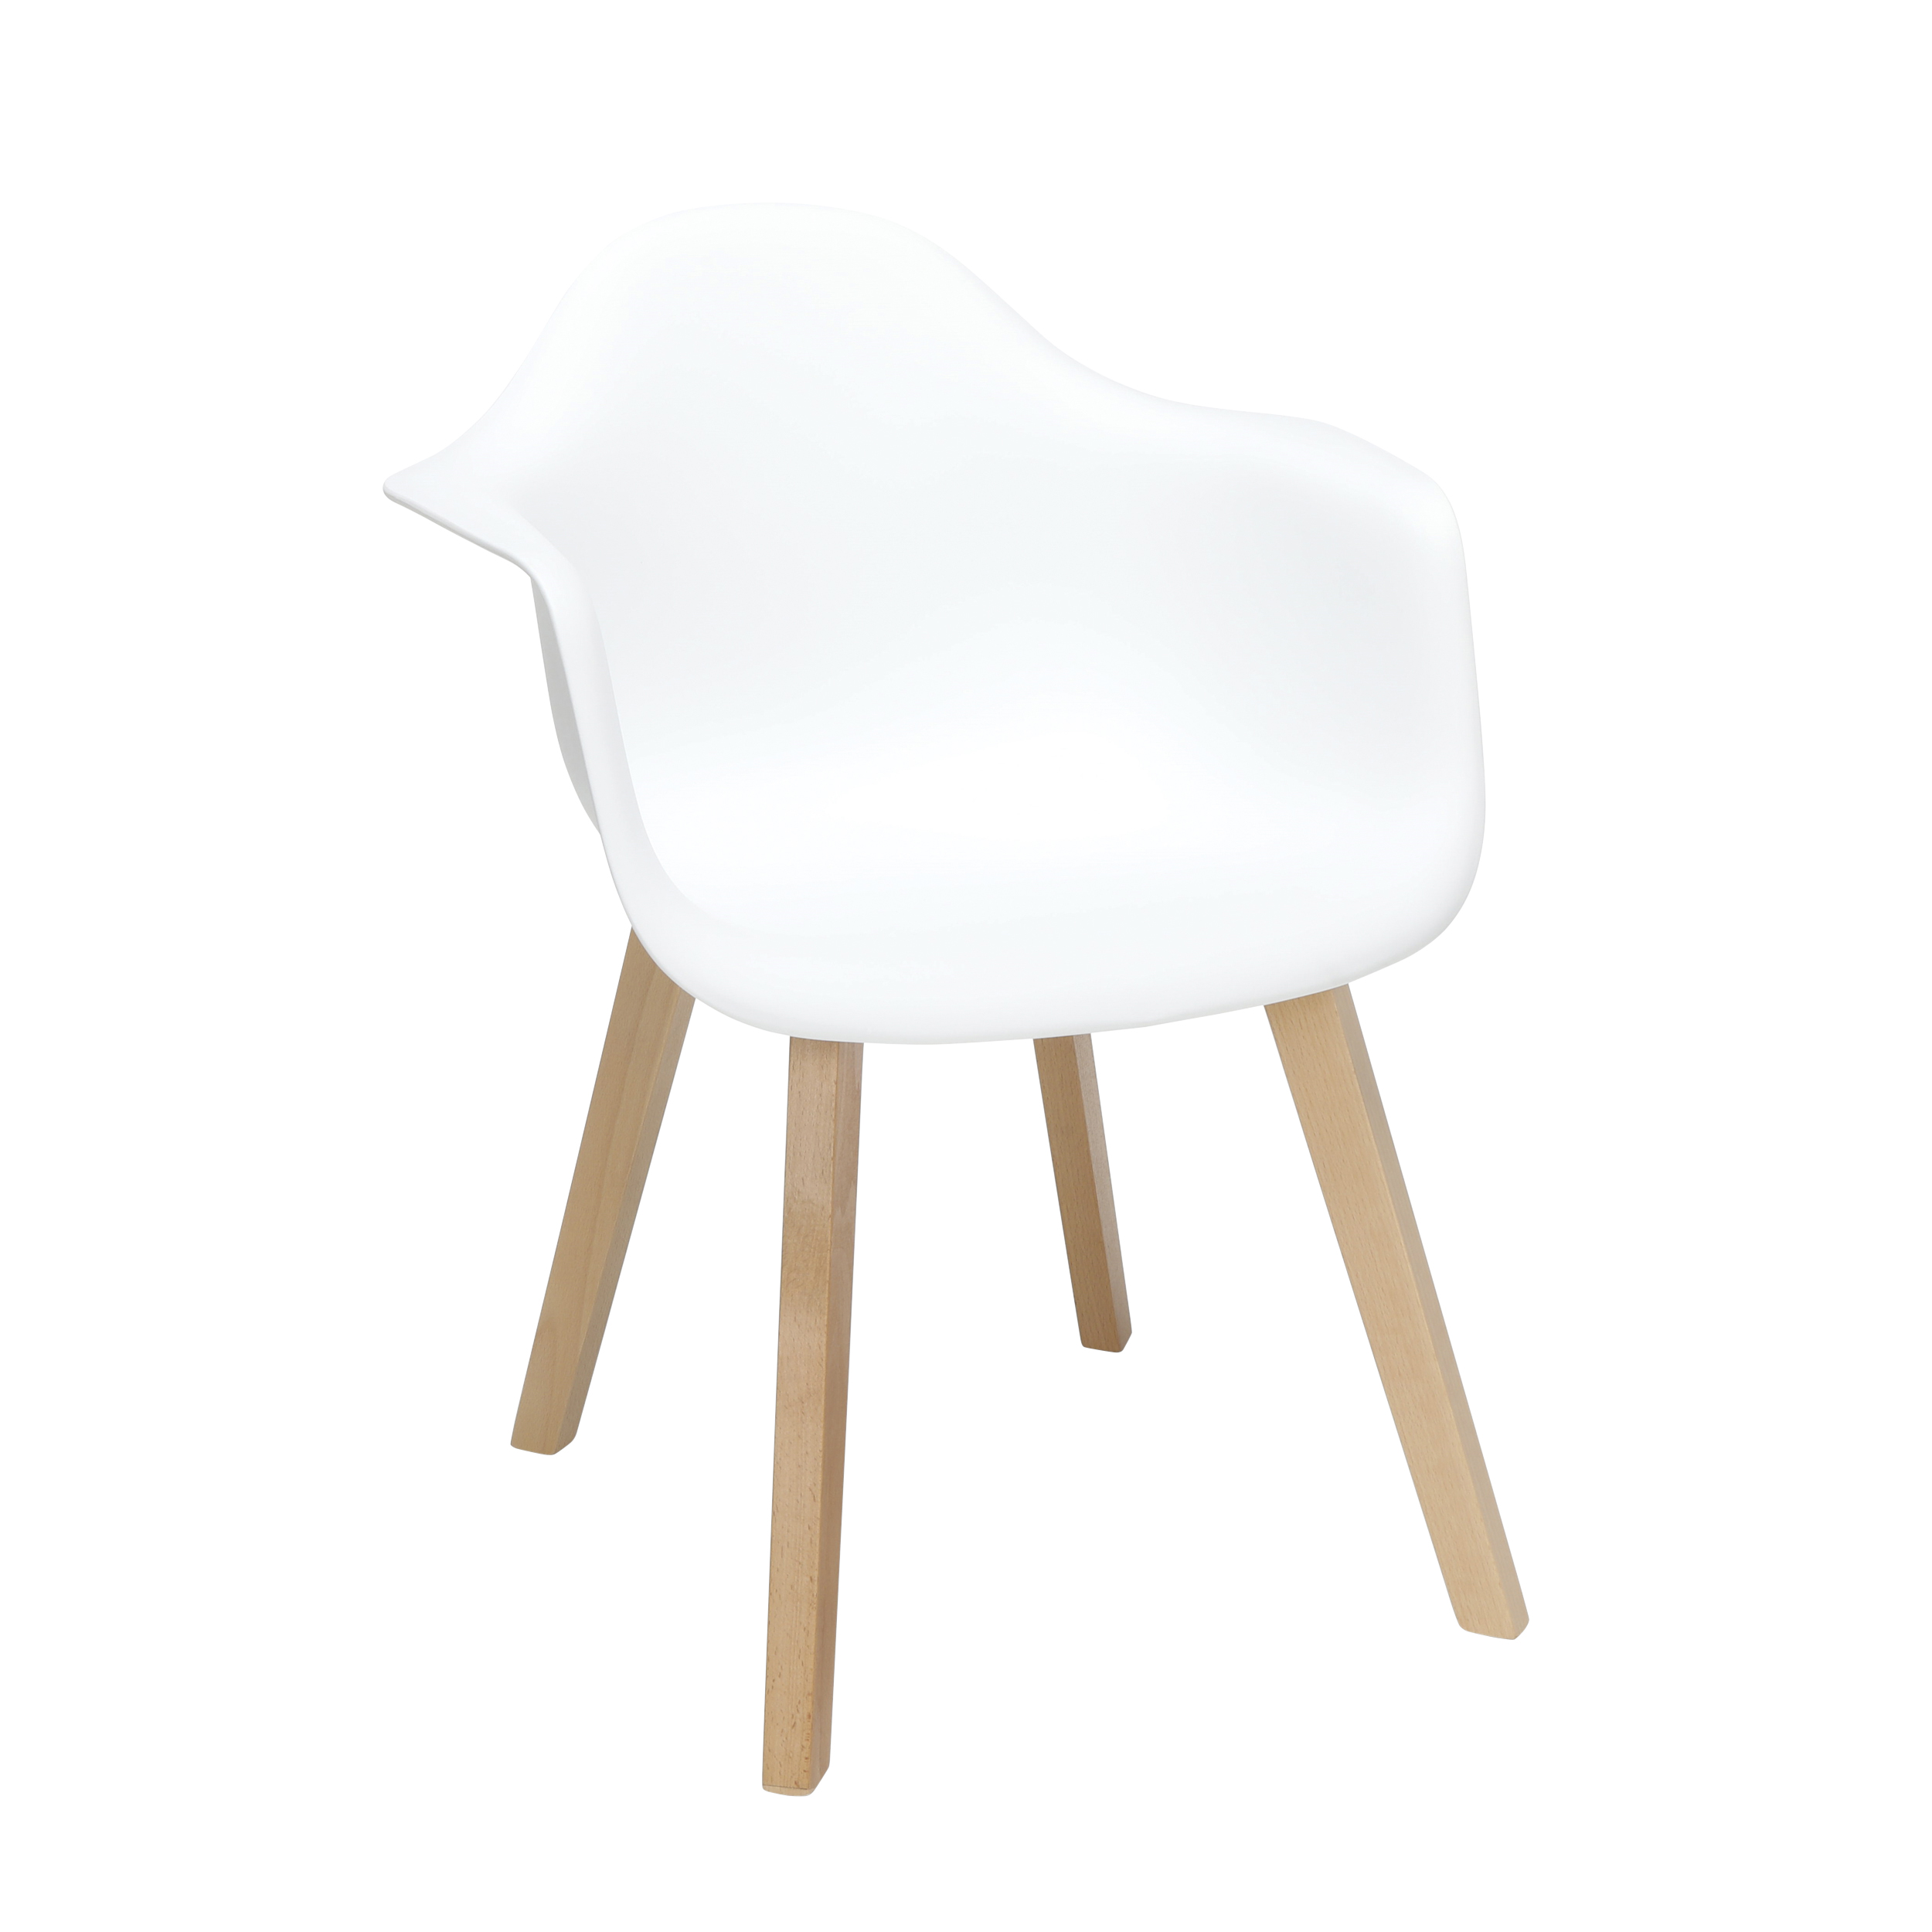 Fine Ofm 161 Collection Mid Century Modern Plastic Molded Accent Chairs With Arms Dining Chairs Solid Beechwood Legs 2 Pack In White 161 Pa18B Wht 2 Pabps2019 Chair Design Images Pabps2019Com